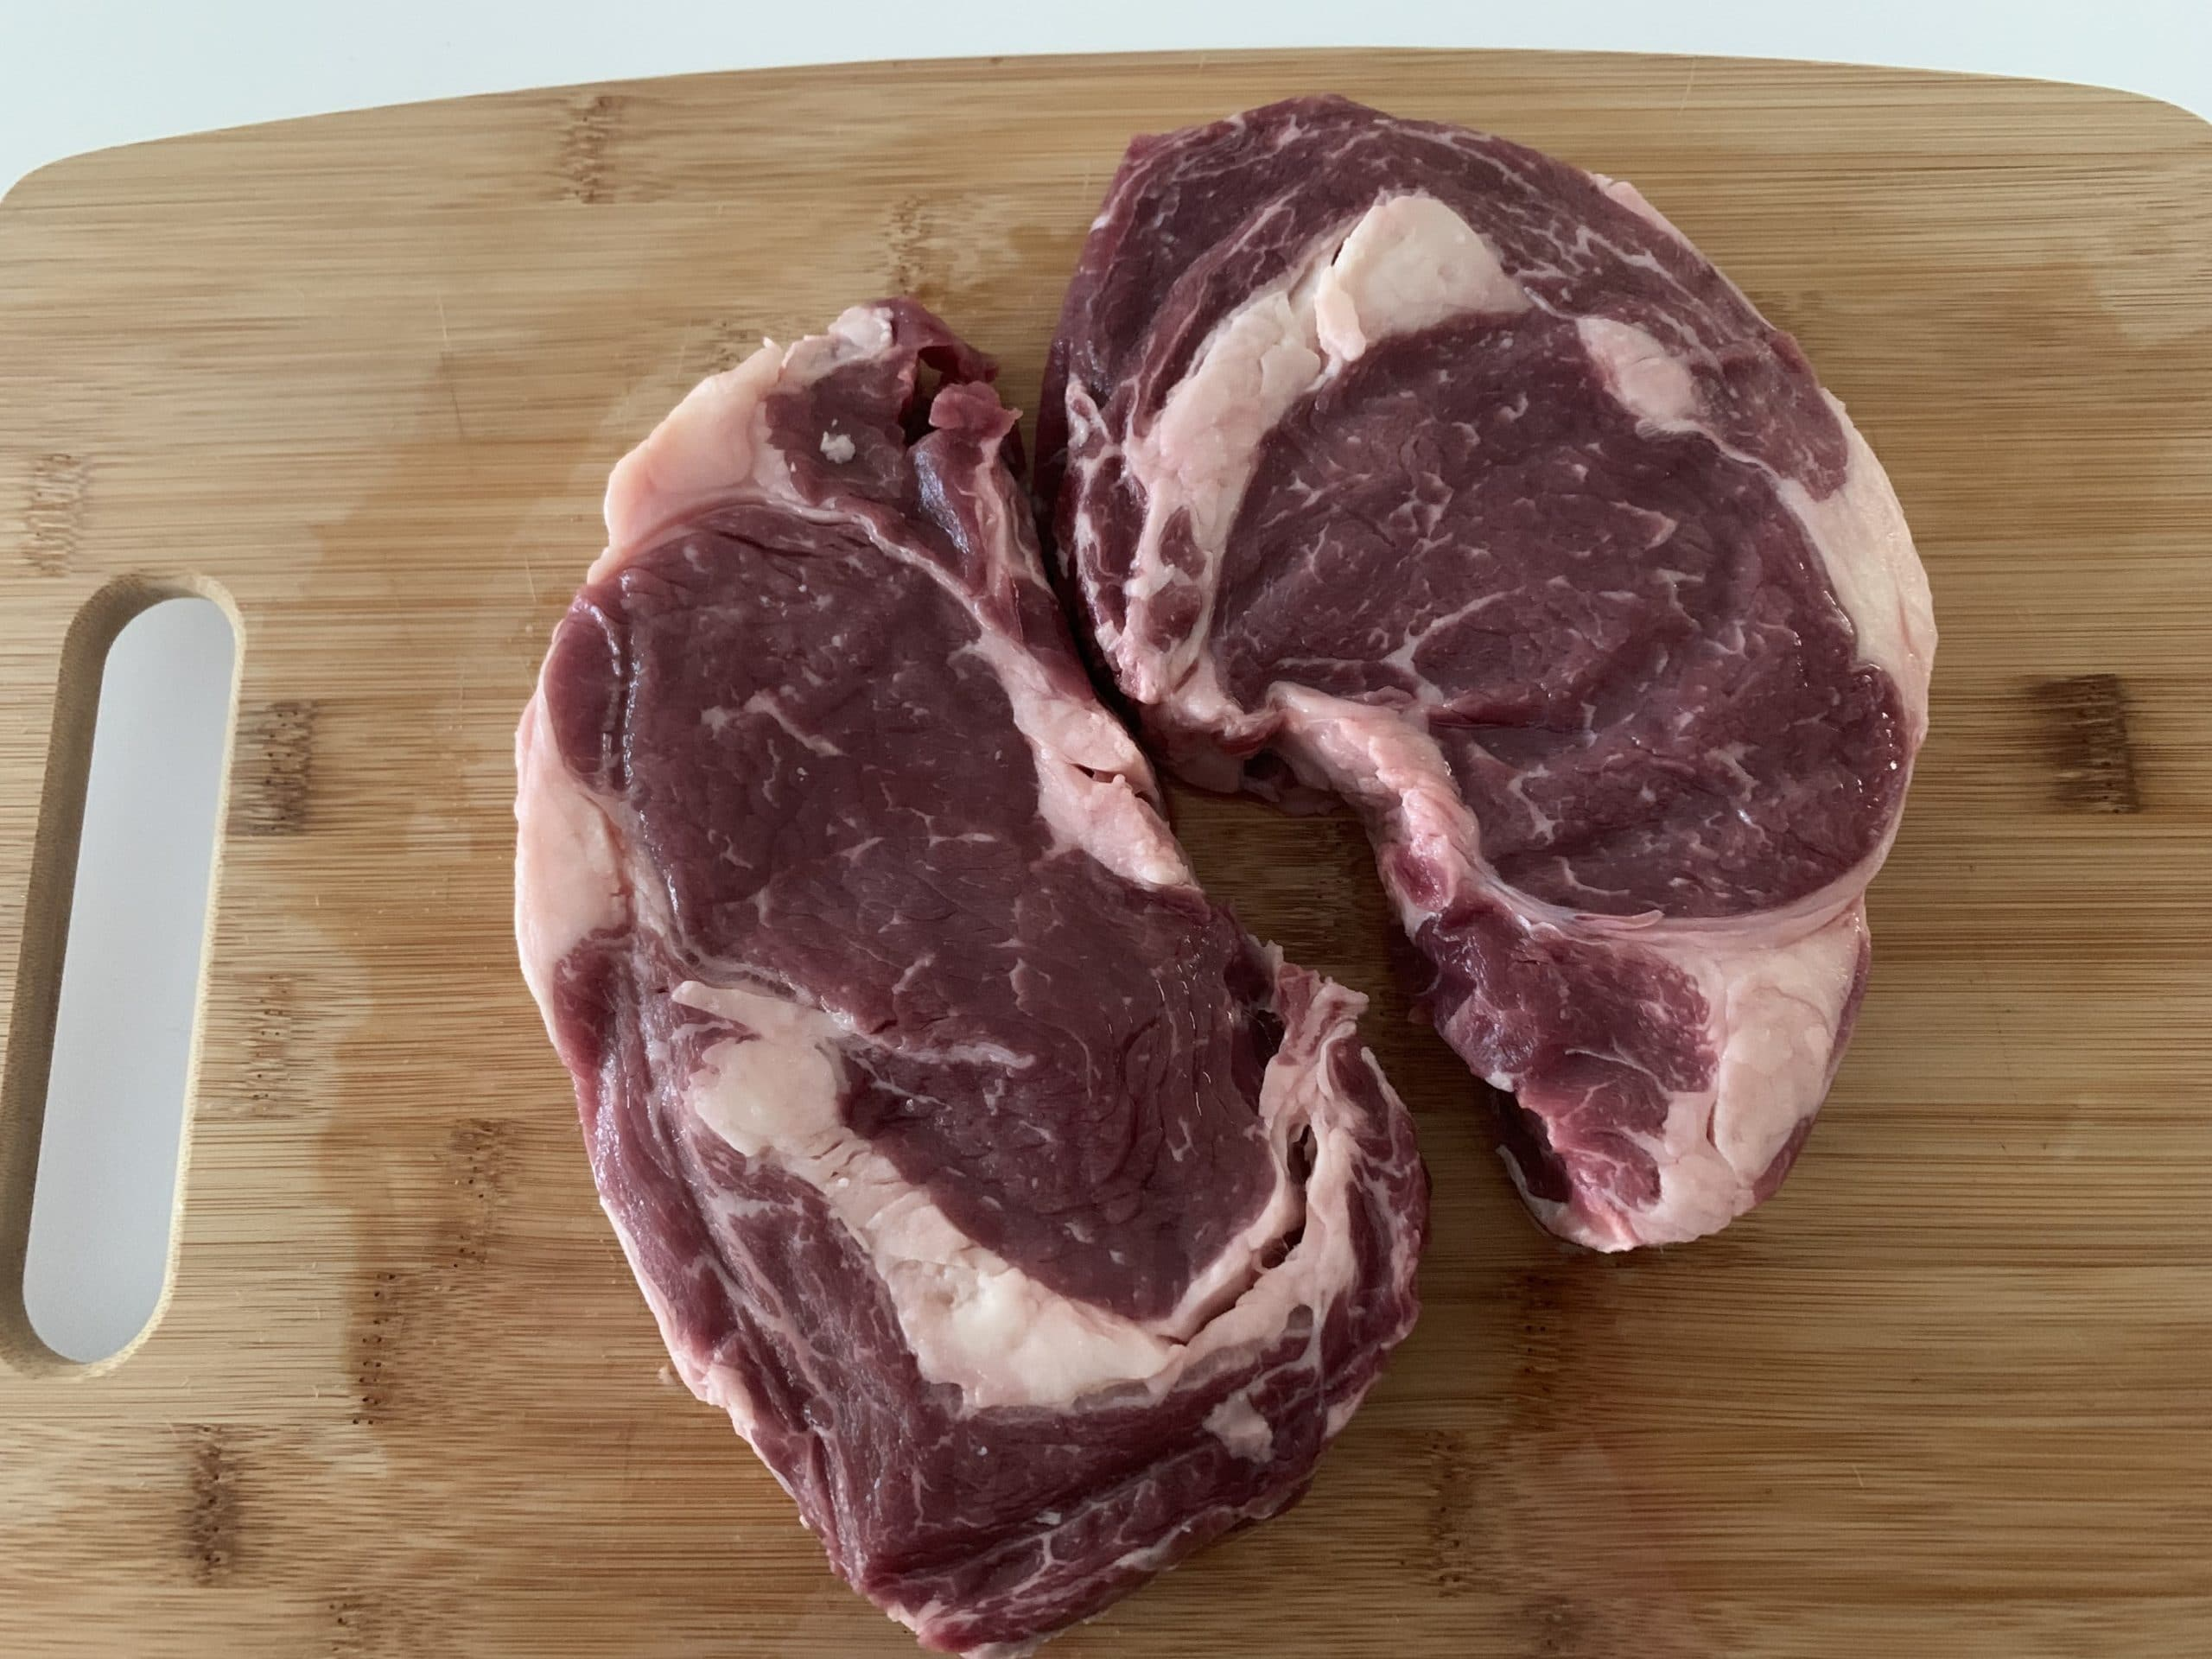 Organic Steak - Organic Grass Fed Beef from Organic Michigan Farm - Graham's Organics